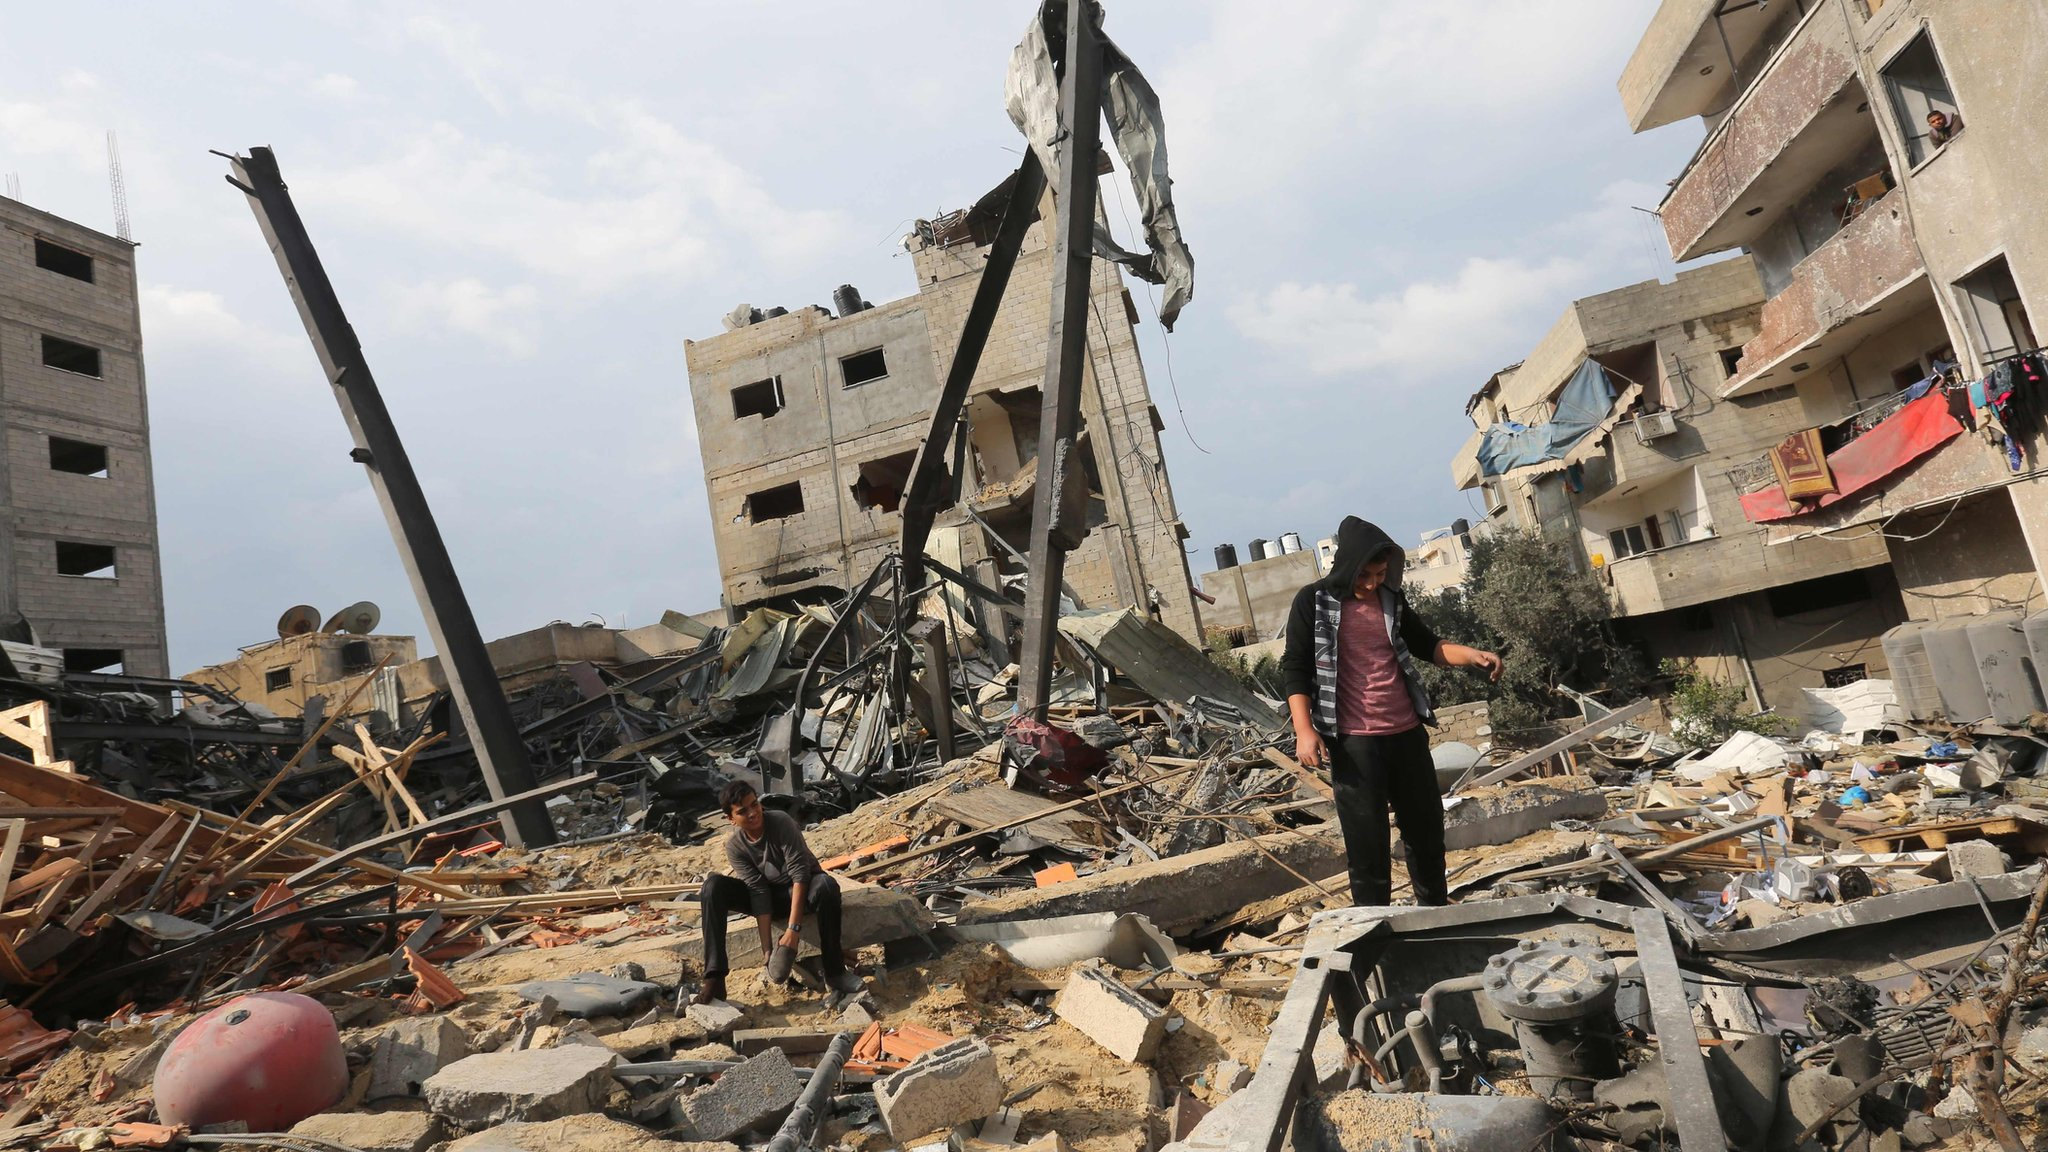 Israel Defence Minister Lieberman resigns over Gaza ceasefire